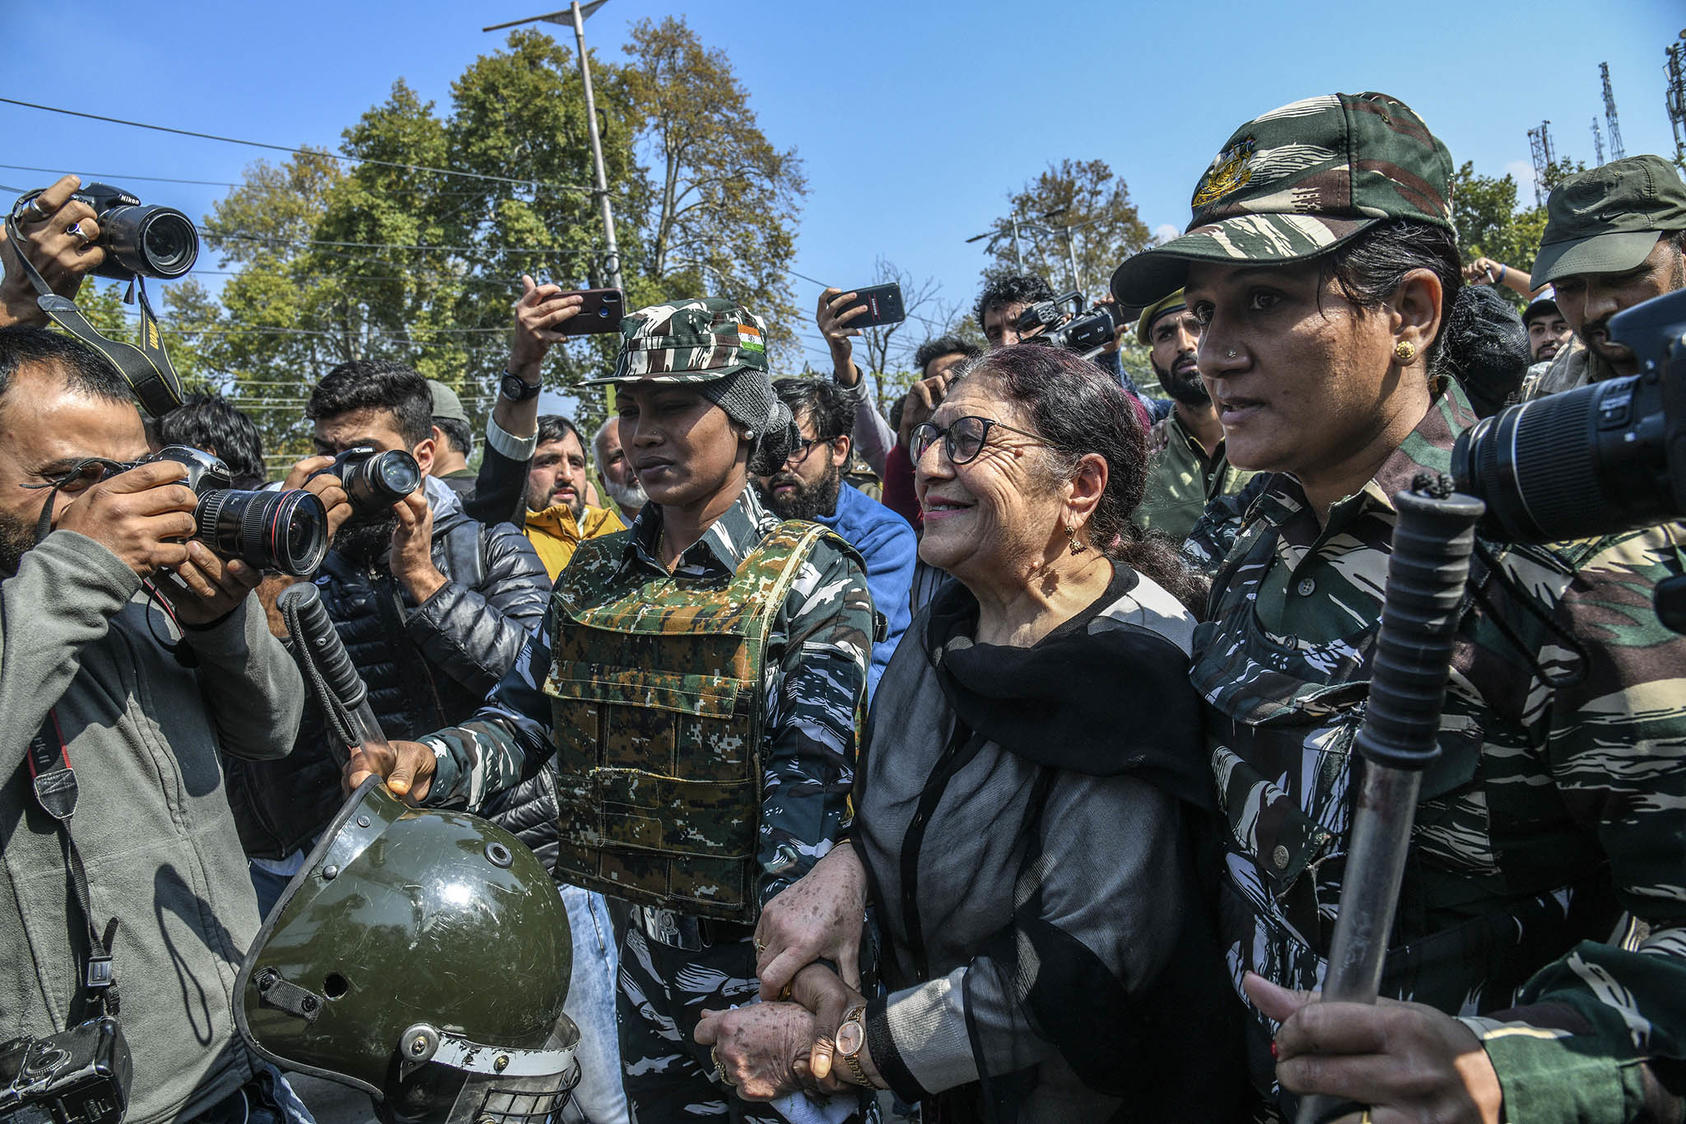 Indian security forces arrest one of a group of Kashmiri women who rallied in protest October 15 against the continued detention of Kashmiri political leaders, part of India's crackdown in the region. (Atul Loke/The New York Times)